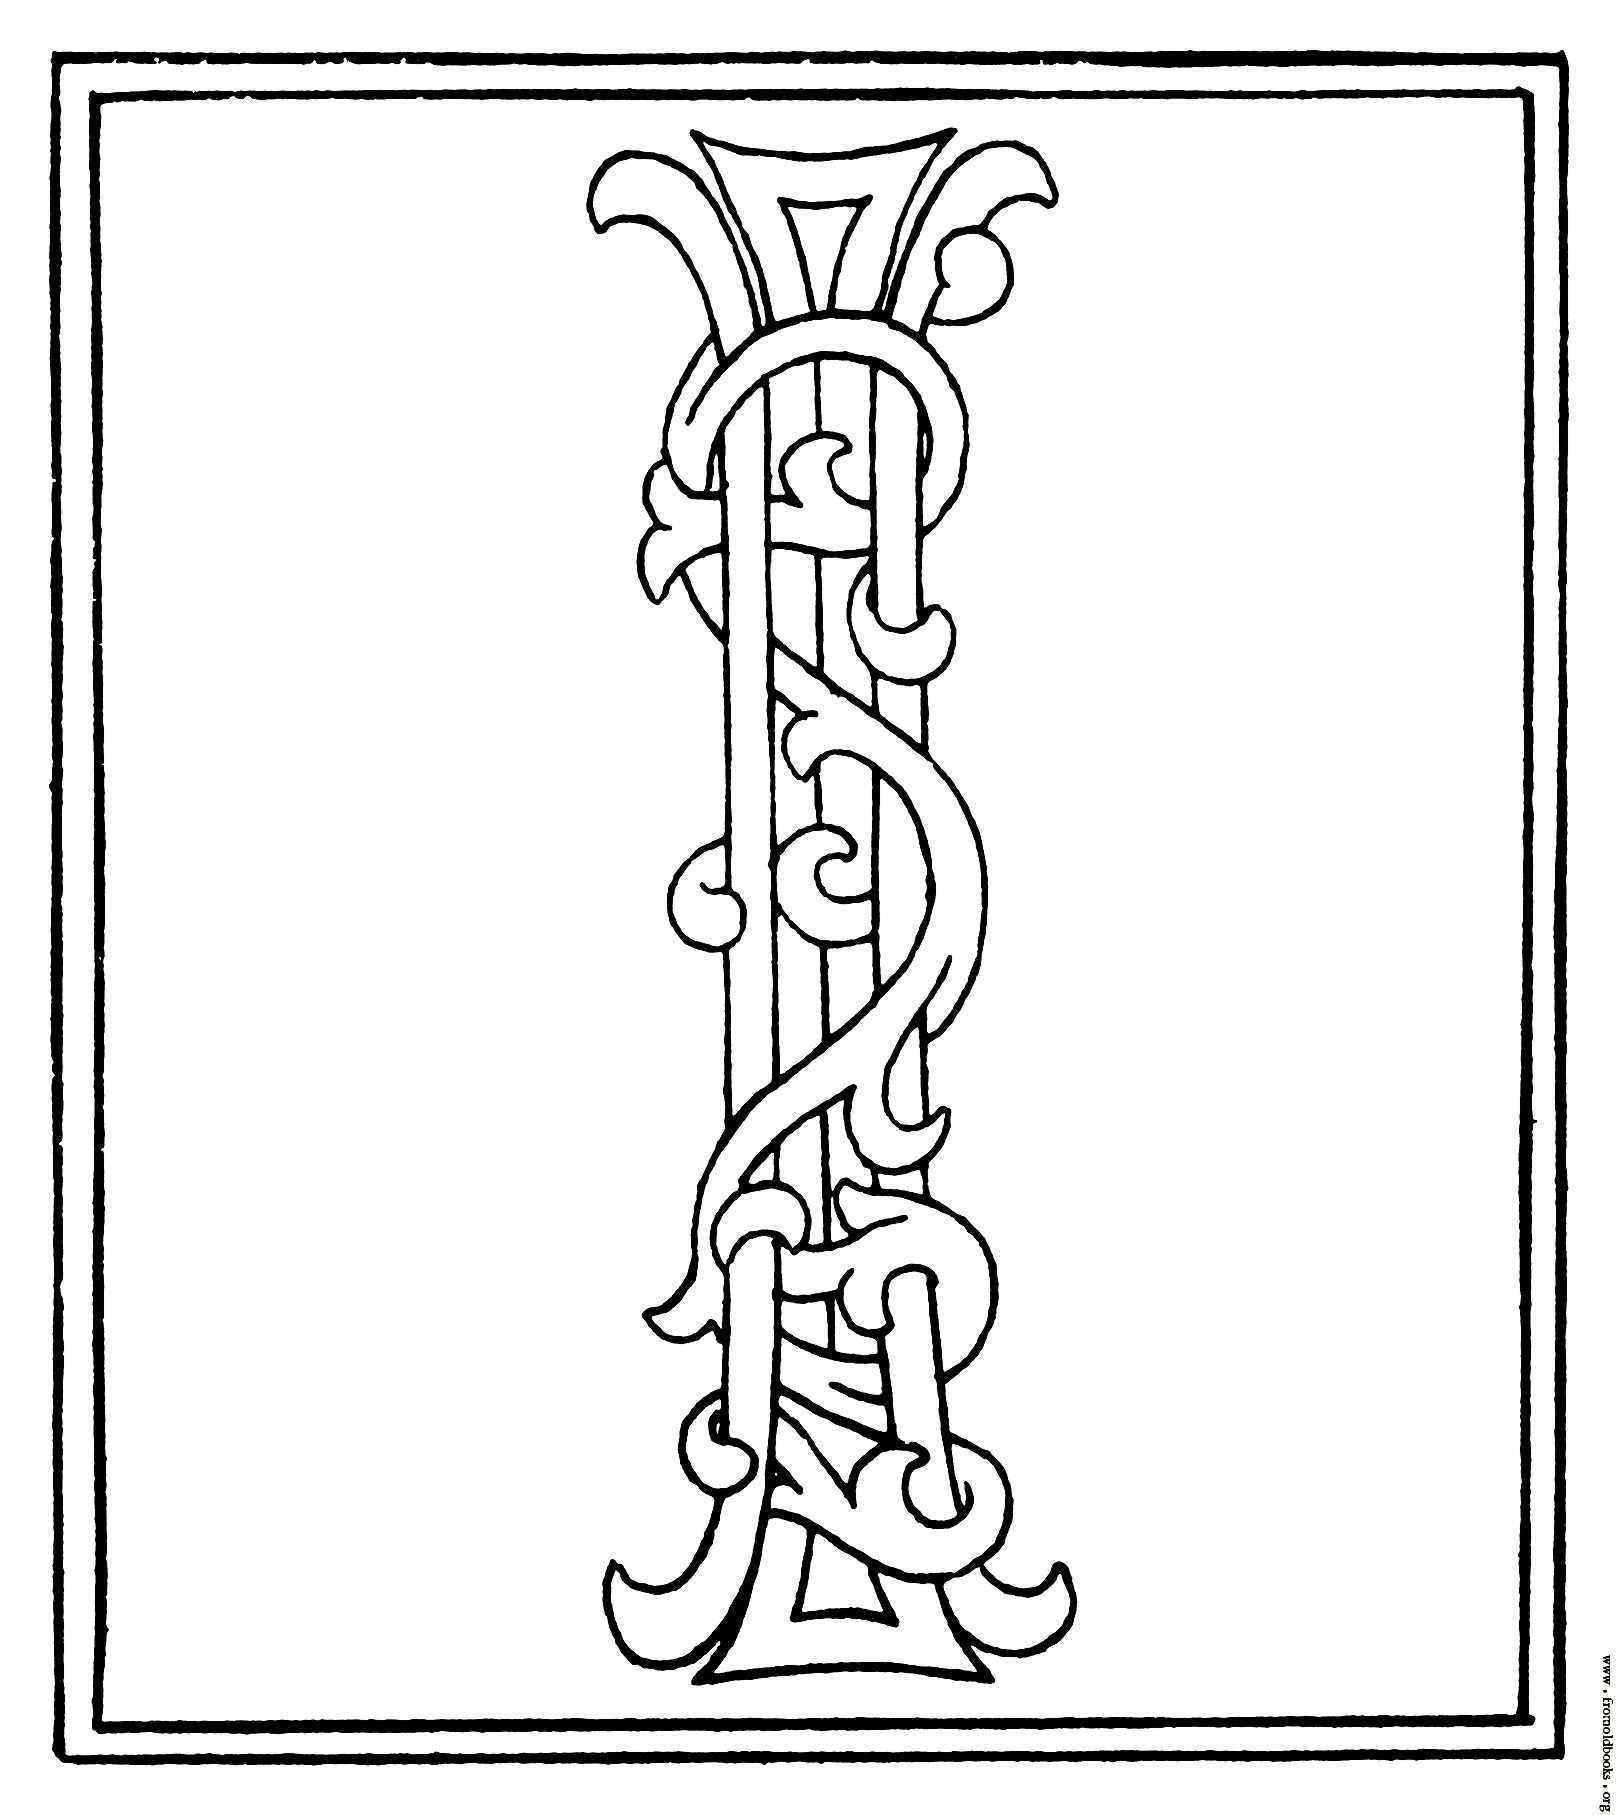 clipart: initial letter I from late 15th century printed book.